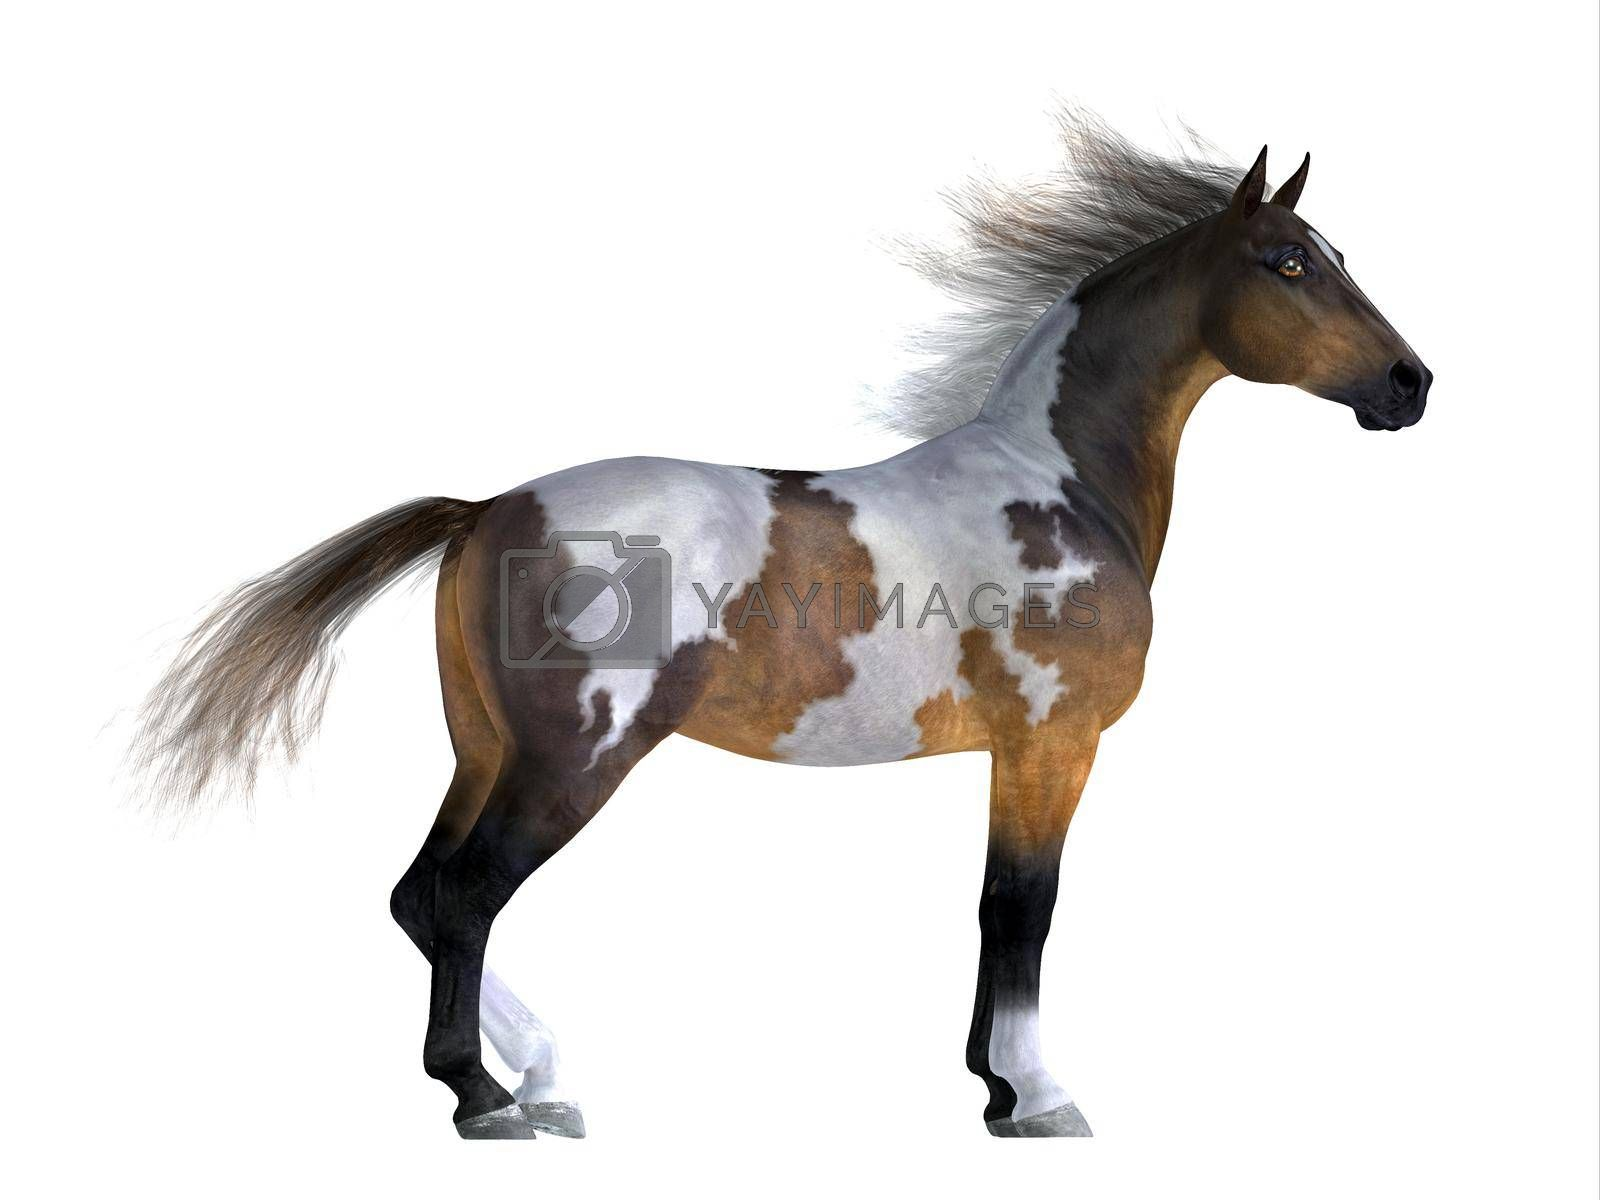 Royalty free image of Wild Mustang Stallion by Catmando